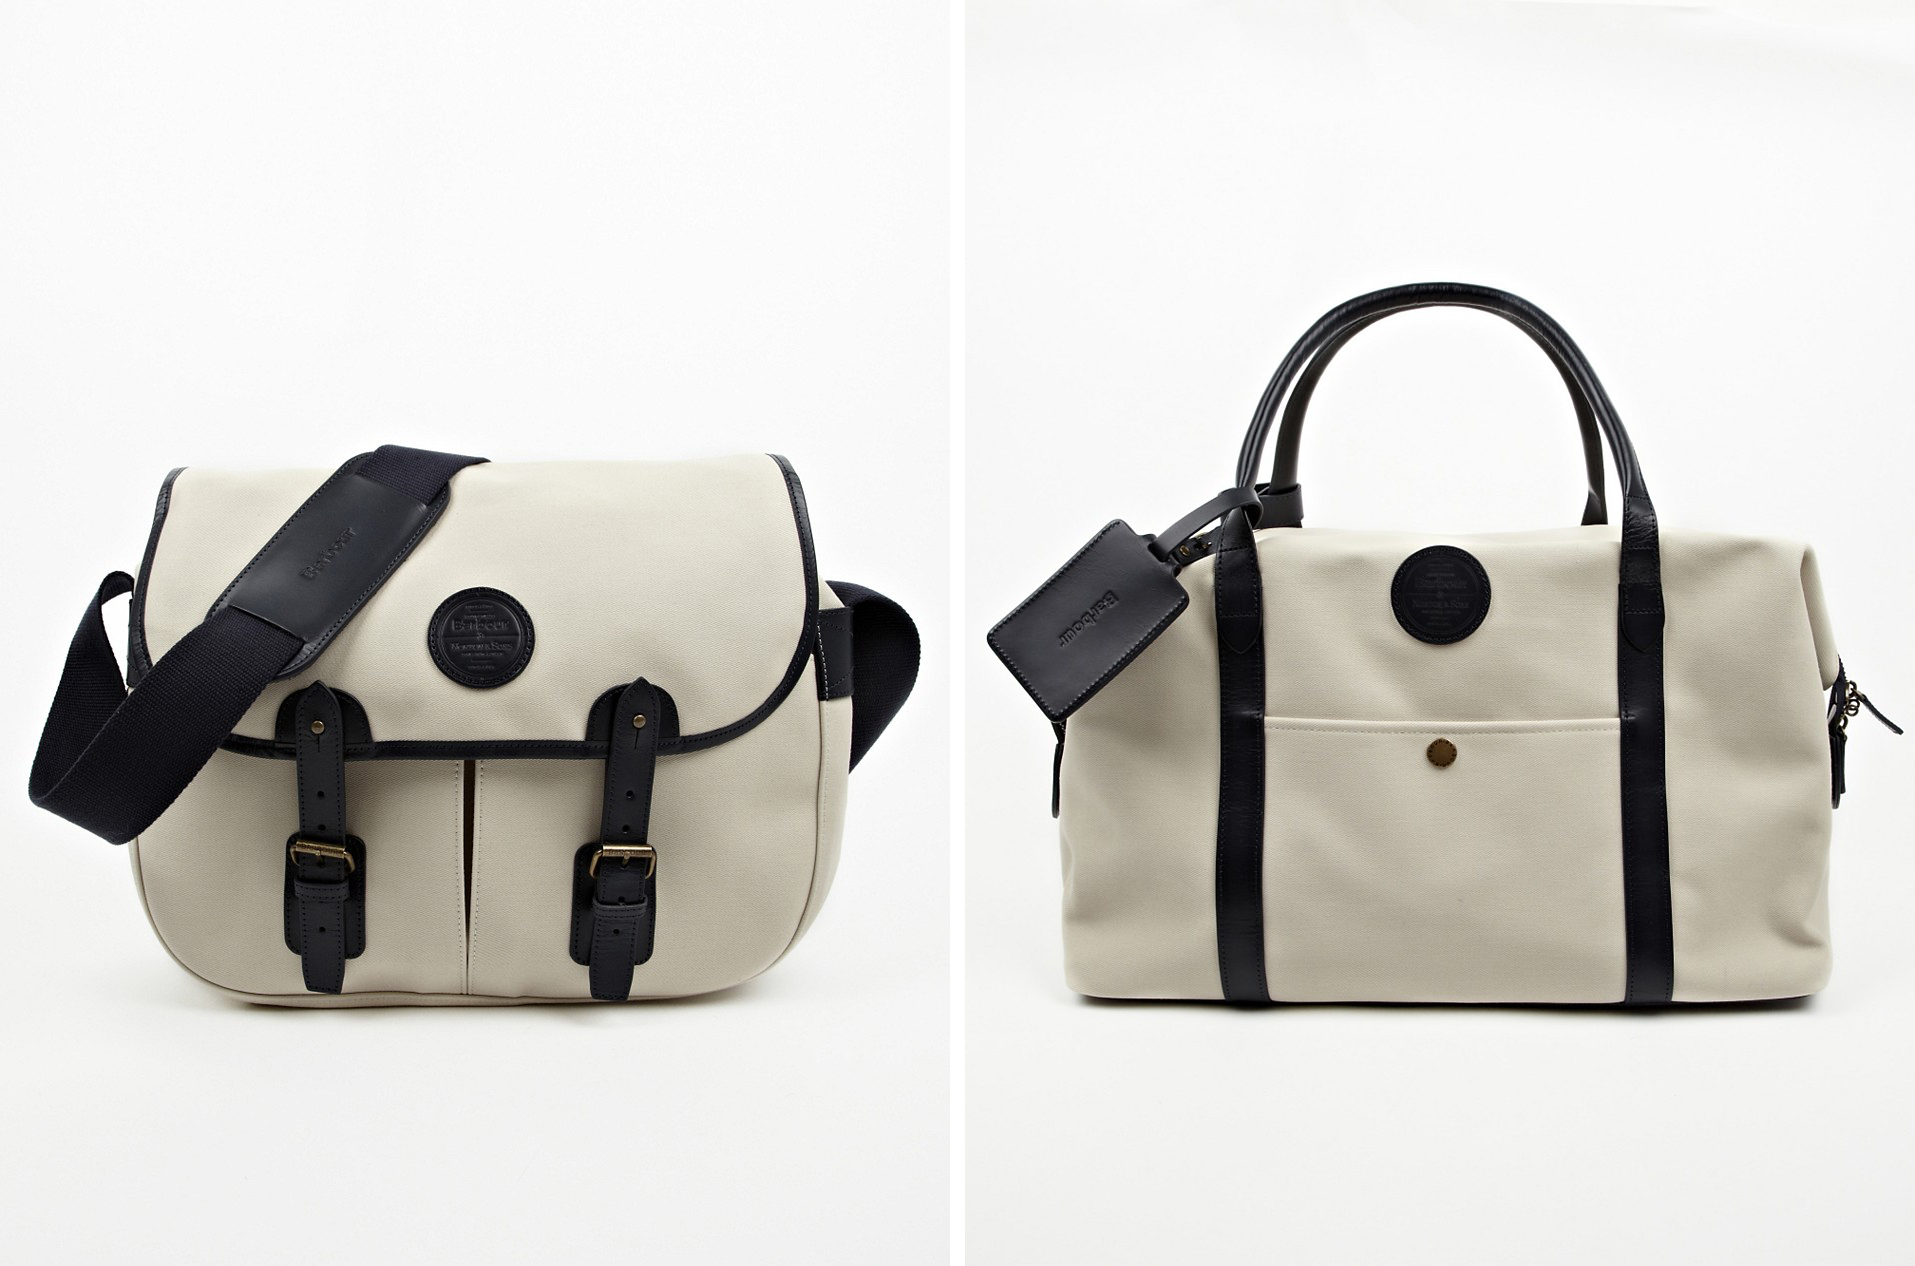 Barbour Norton sons accessories Fall 2013 3 Barbour for Norton & Sons Messenger and Tote Bags